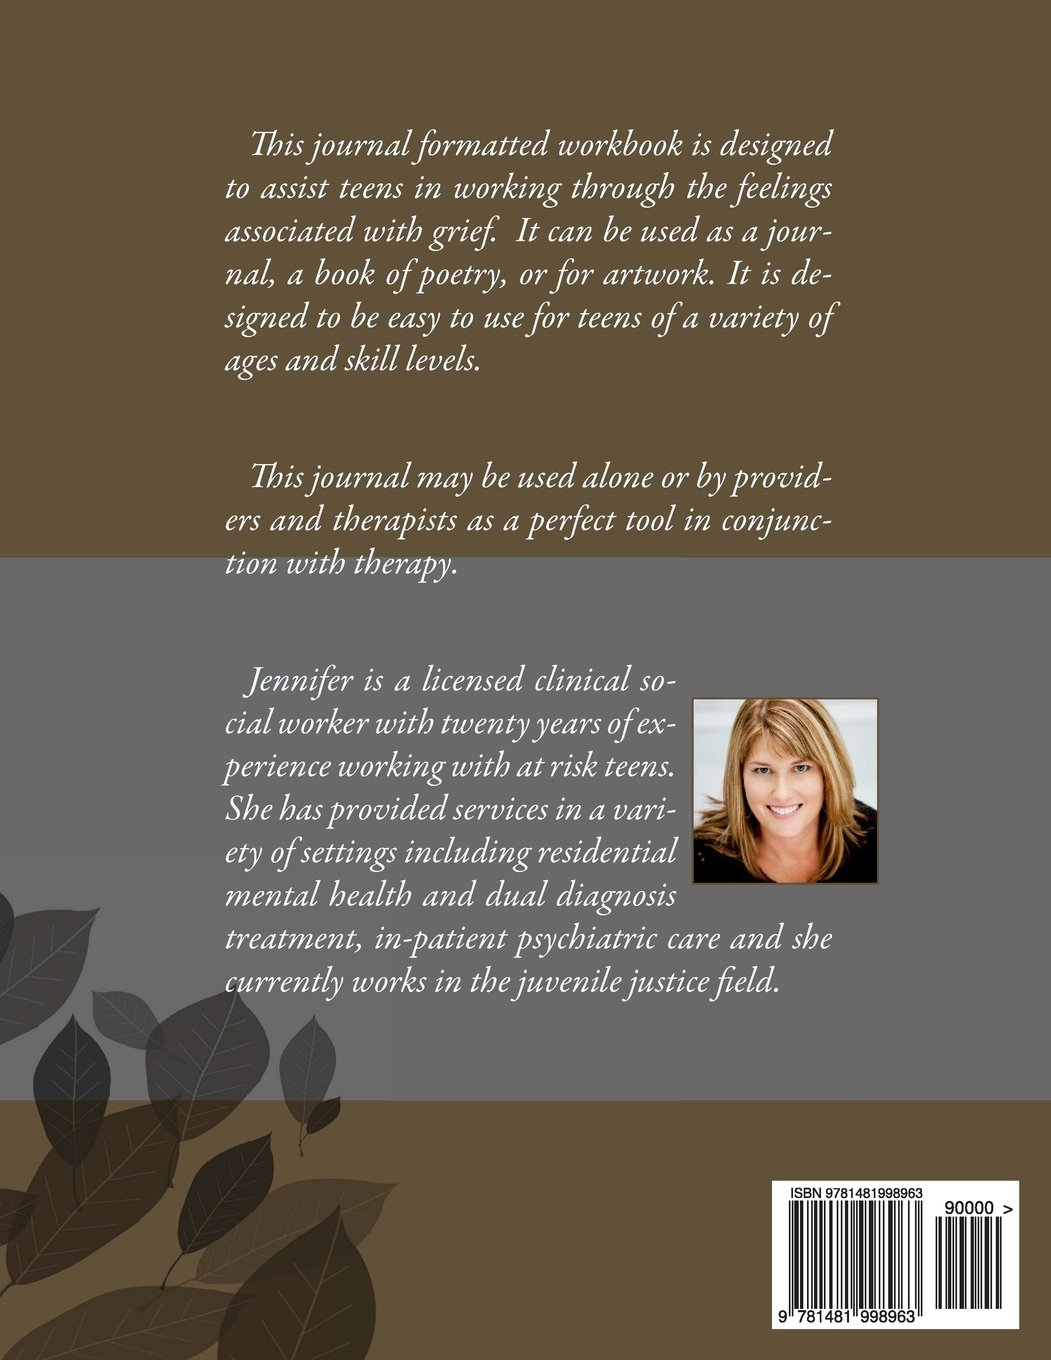 Workbooks dual diagnosis workbook free : Amazon.com: Thoughts of You: A Journal for Teens Coping with Grief ...